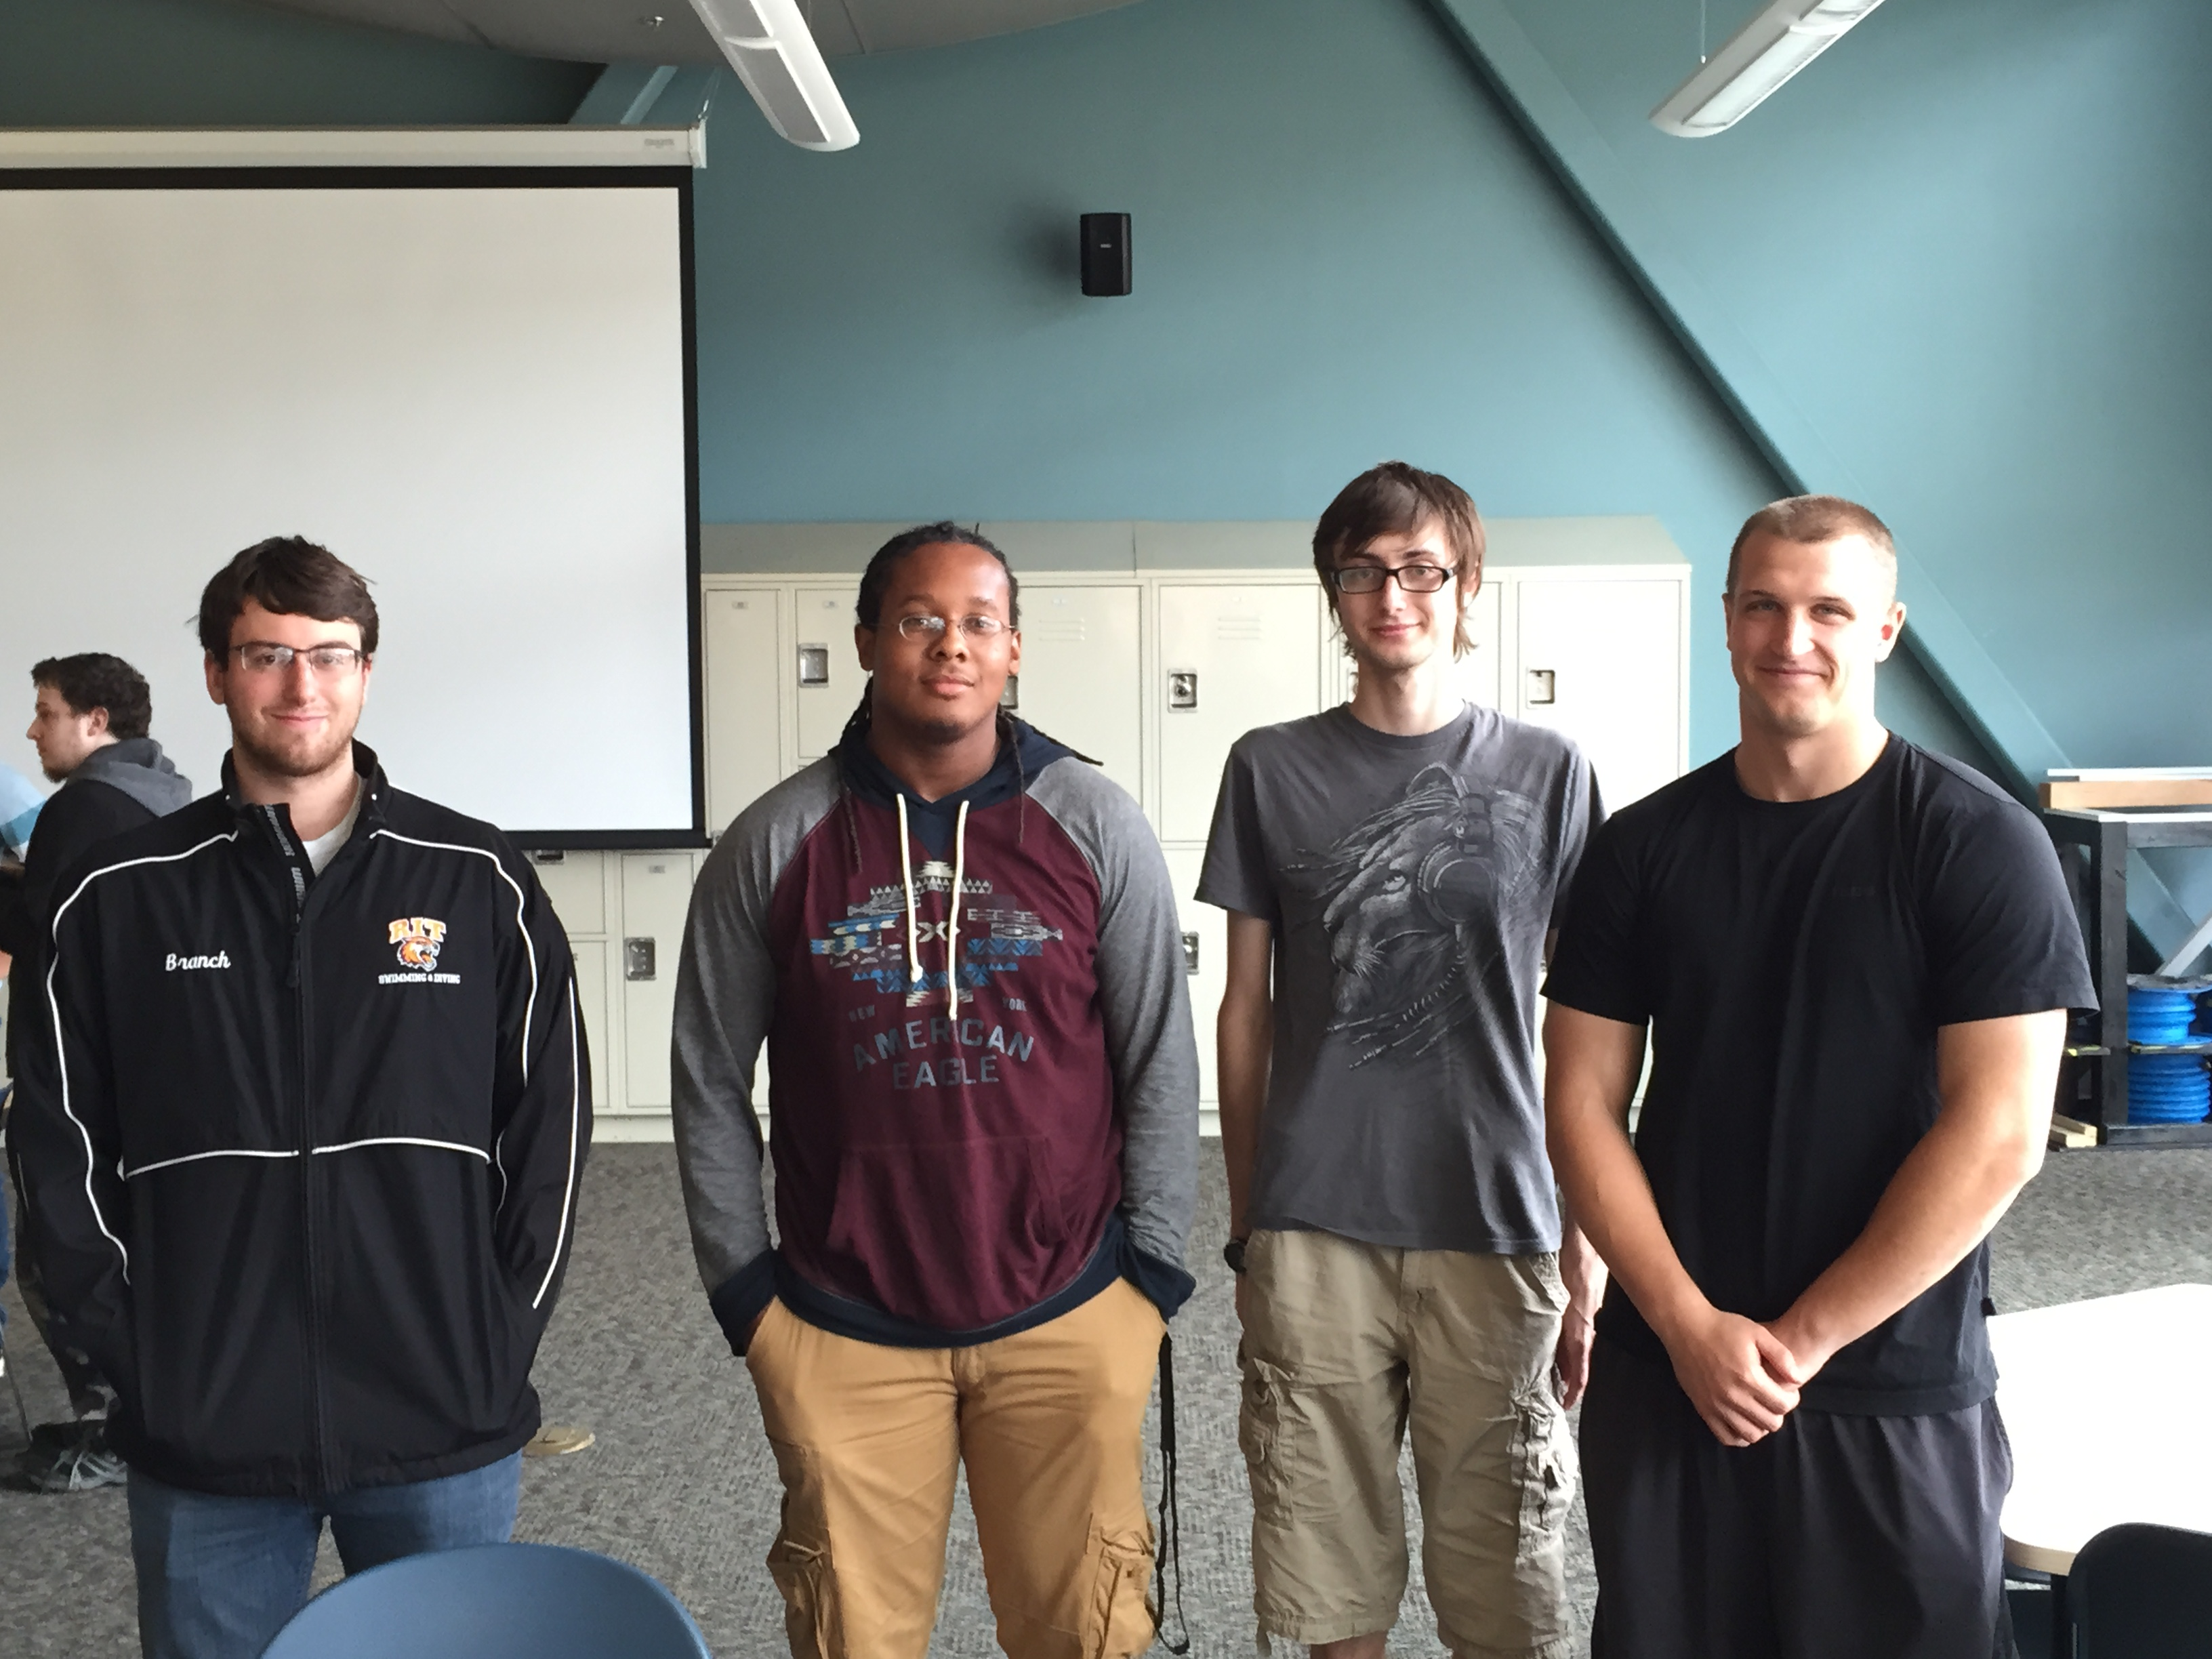 From left to right: Alex Branch, Dominique Hall, Alex Krall, Jacob Swearingen